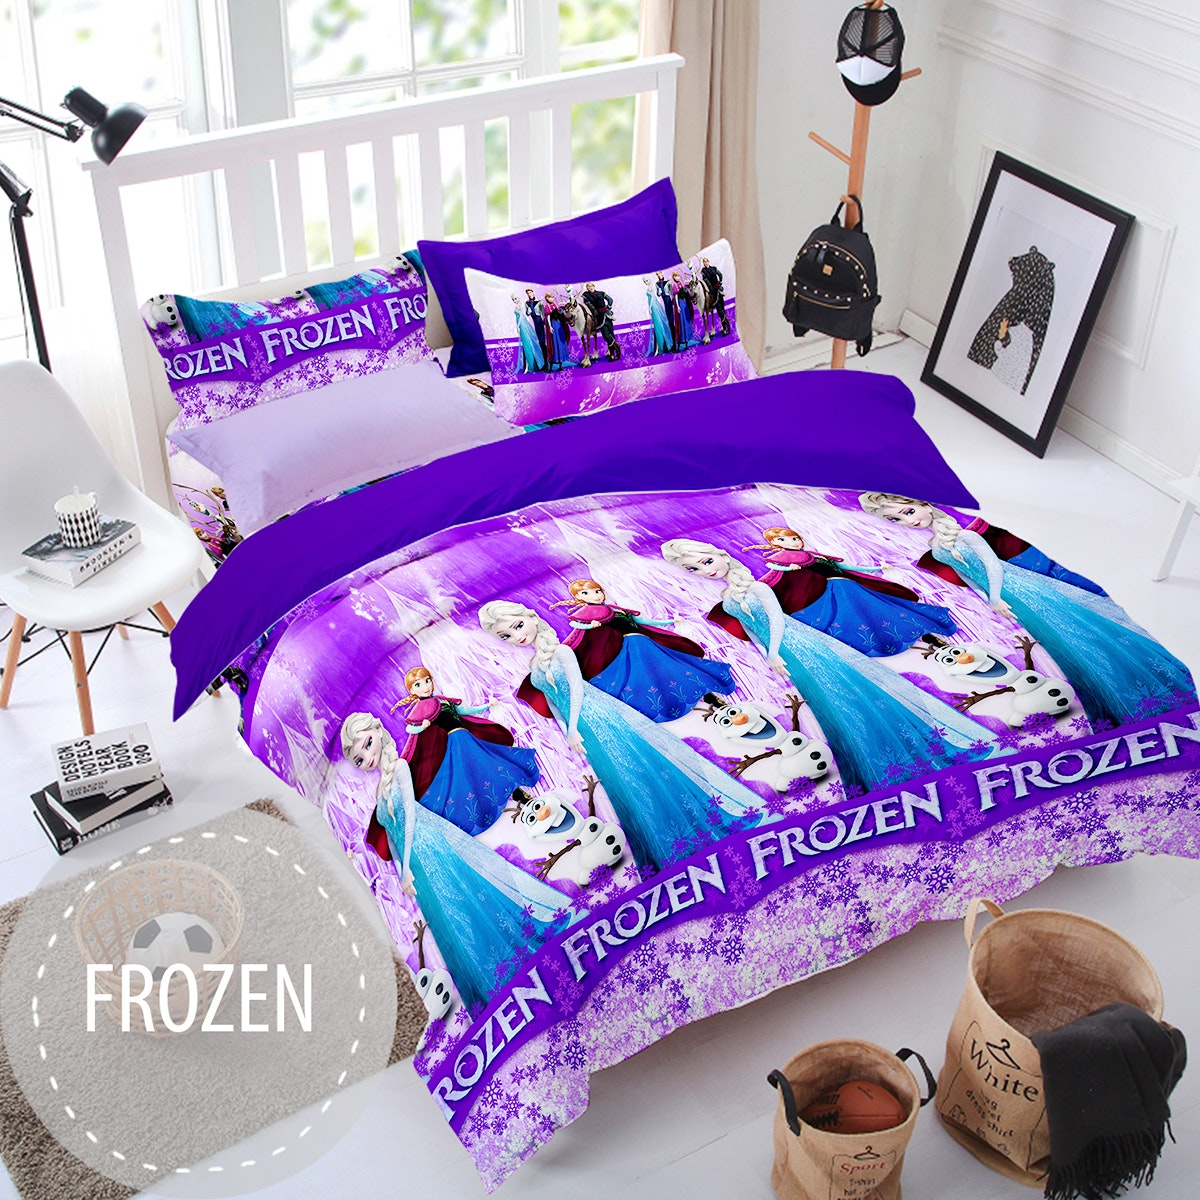 Pesona Sprei Disperse Frozen Ungu uk 160 T 20